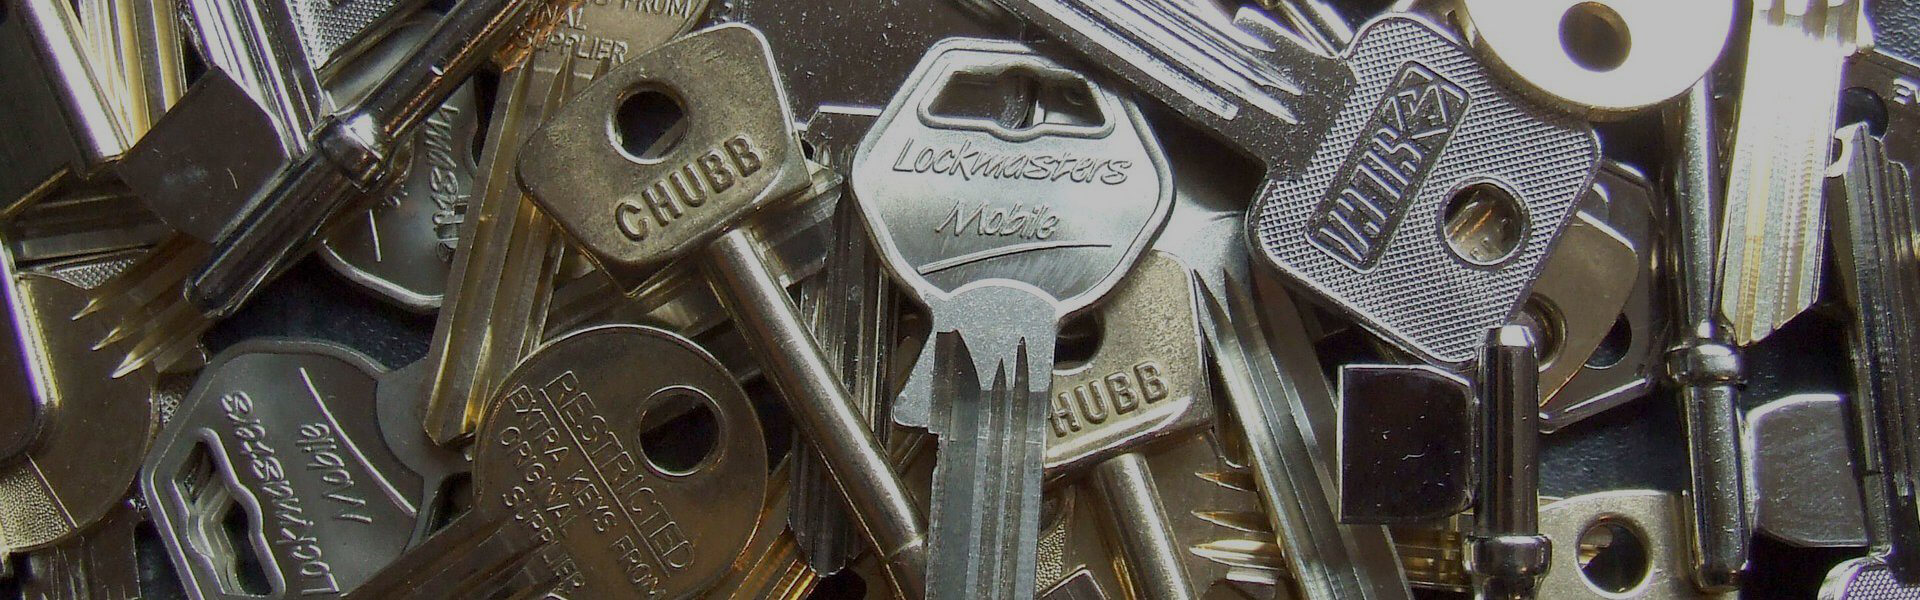 Locksmith and mobile locksmiths in Coalville, Ashby, Shepshed, Loughborough, Kegworth